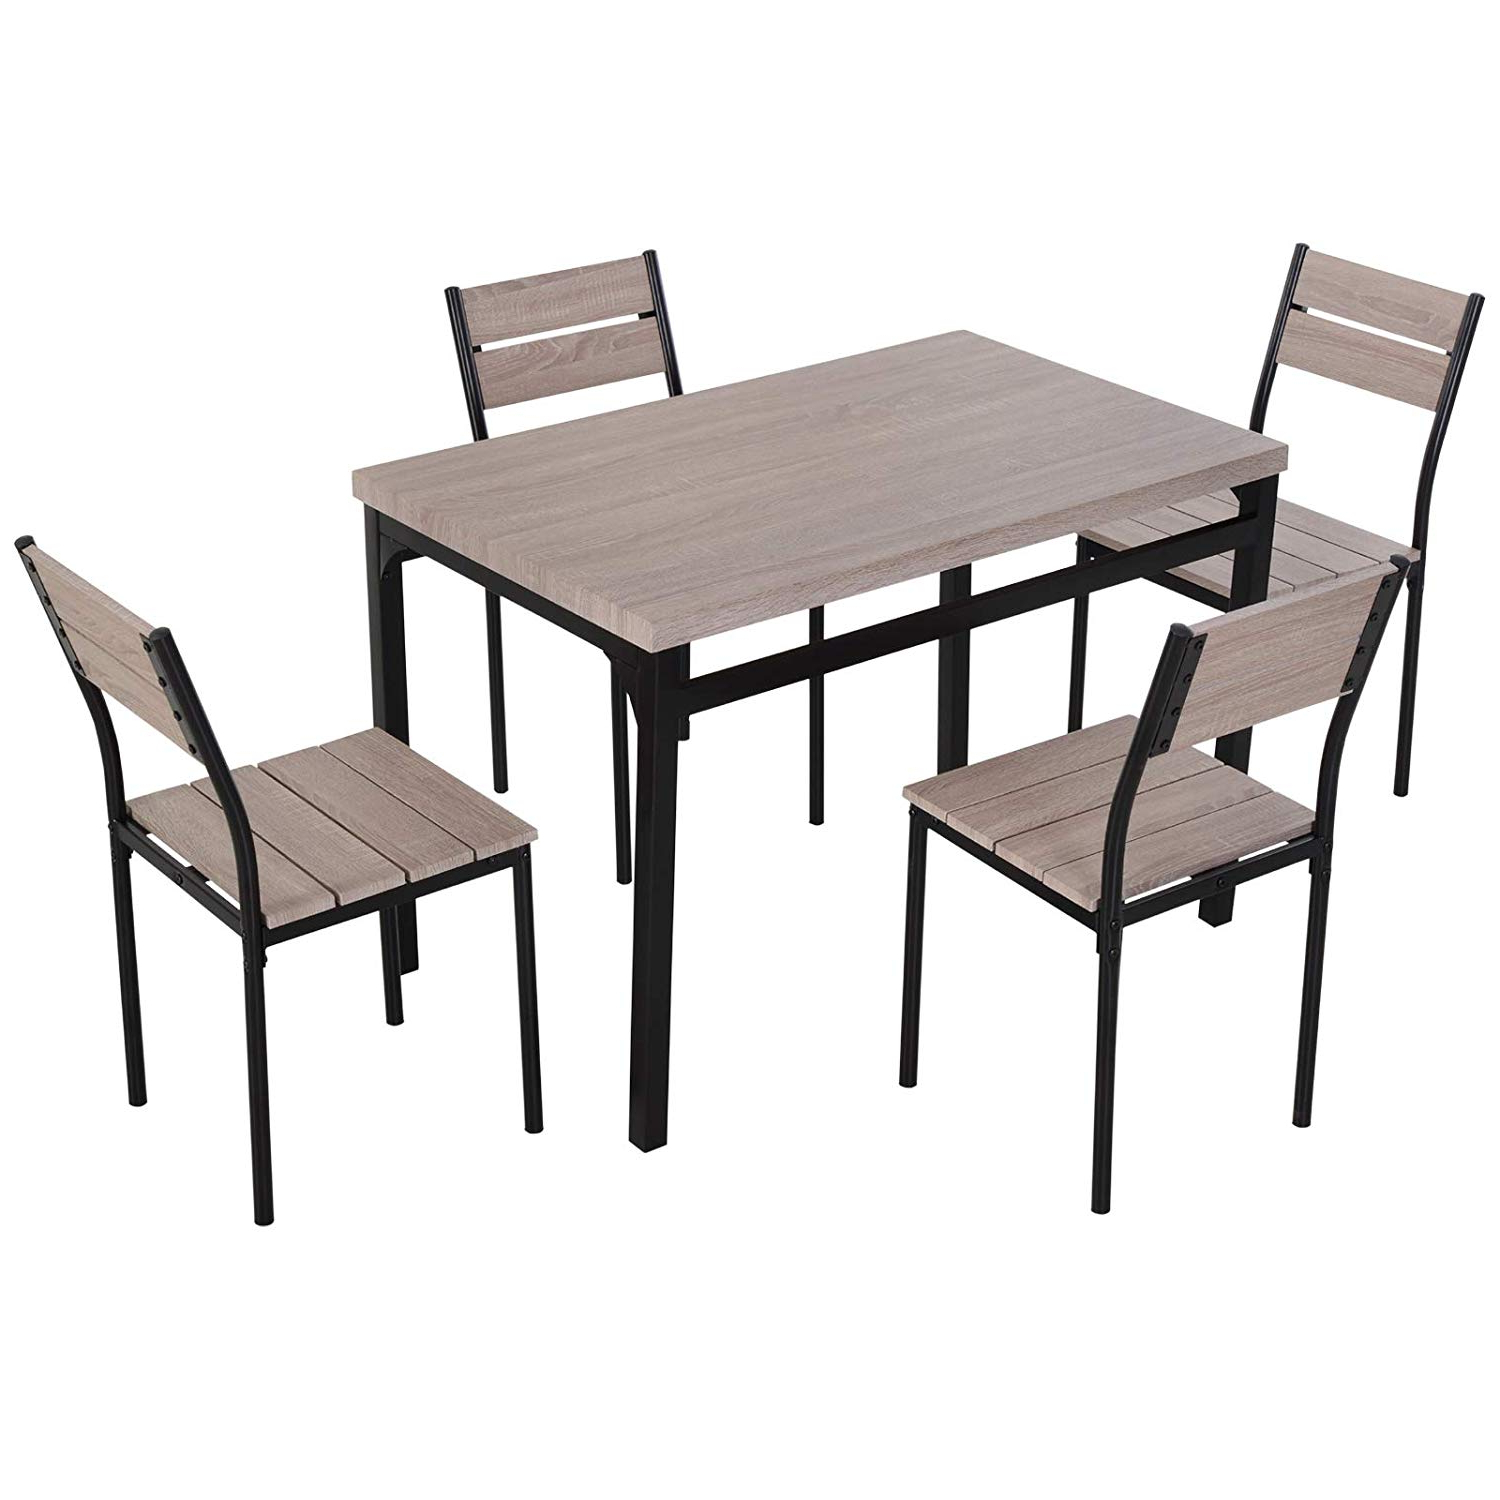 Large Rustic Look Dining Tables Intended For Most Recent Homcom 5 Piece Transitional Style Dining Room Table Set With Chairs (View 16 of 30)